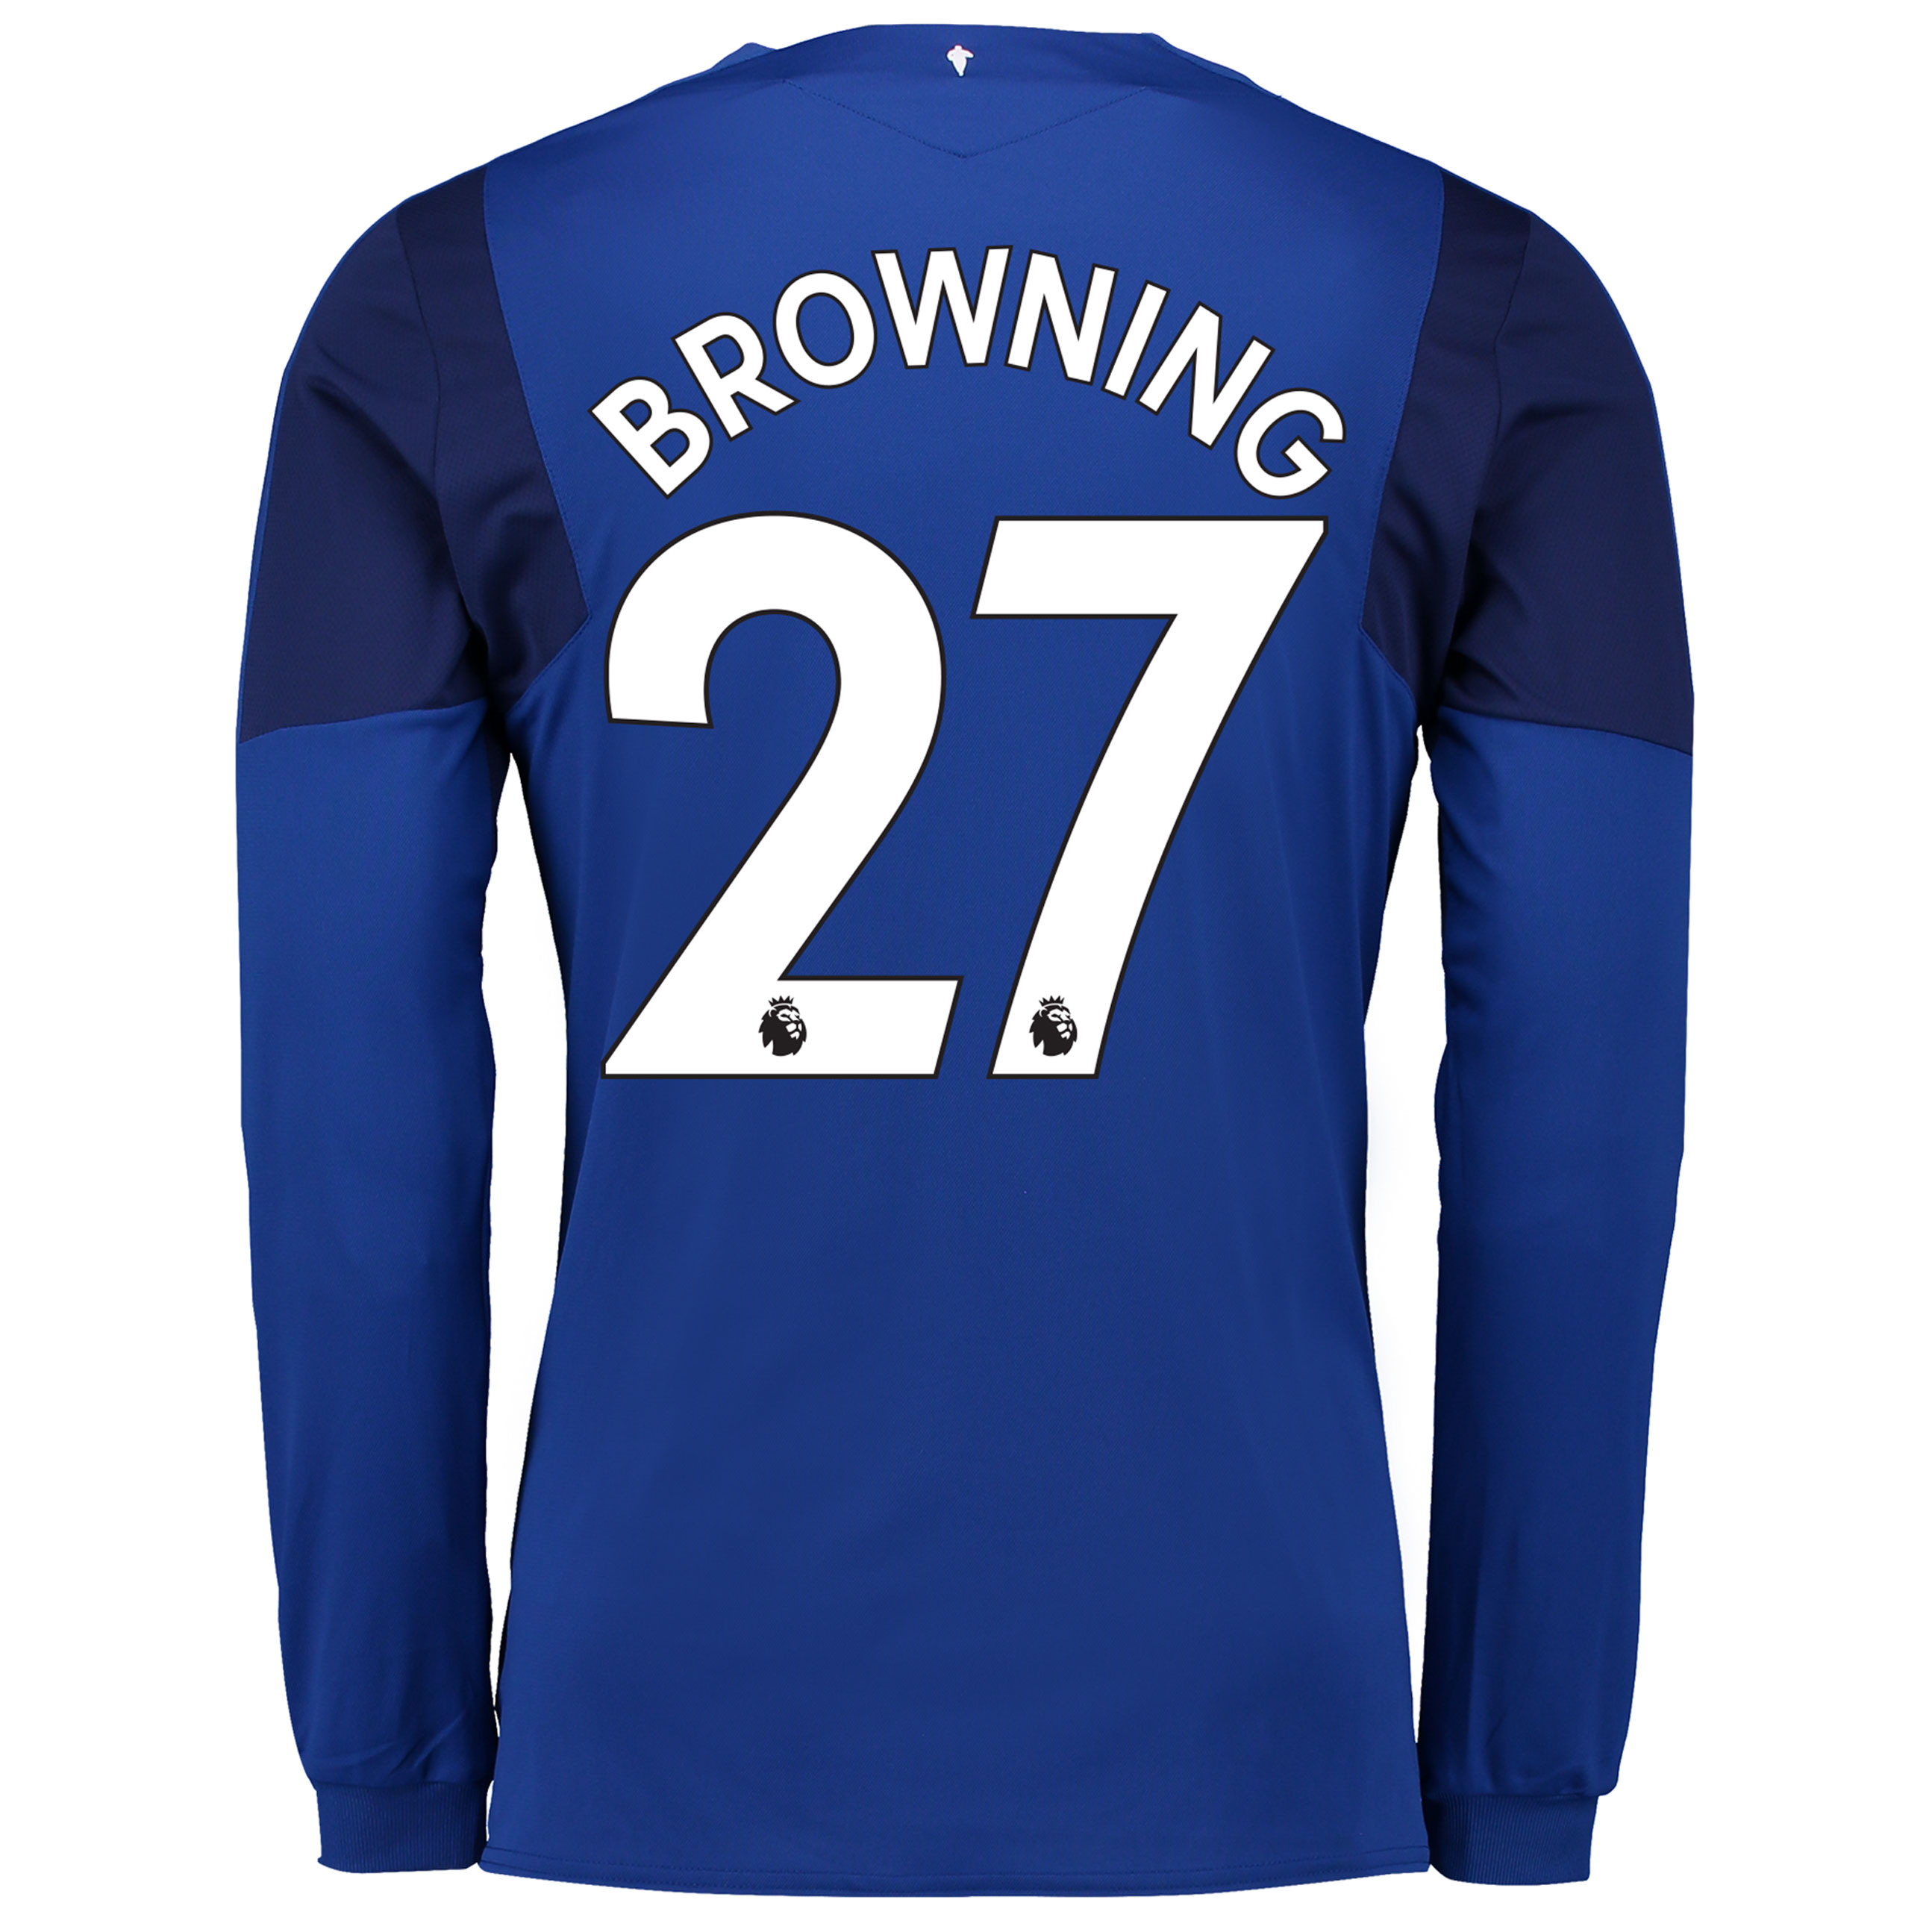 Everton Home Shirt 2017/18 - Long Sleeved with Browning 27 printing